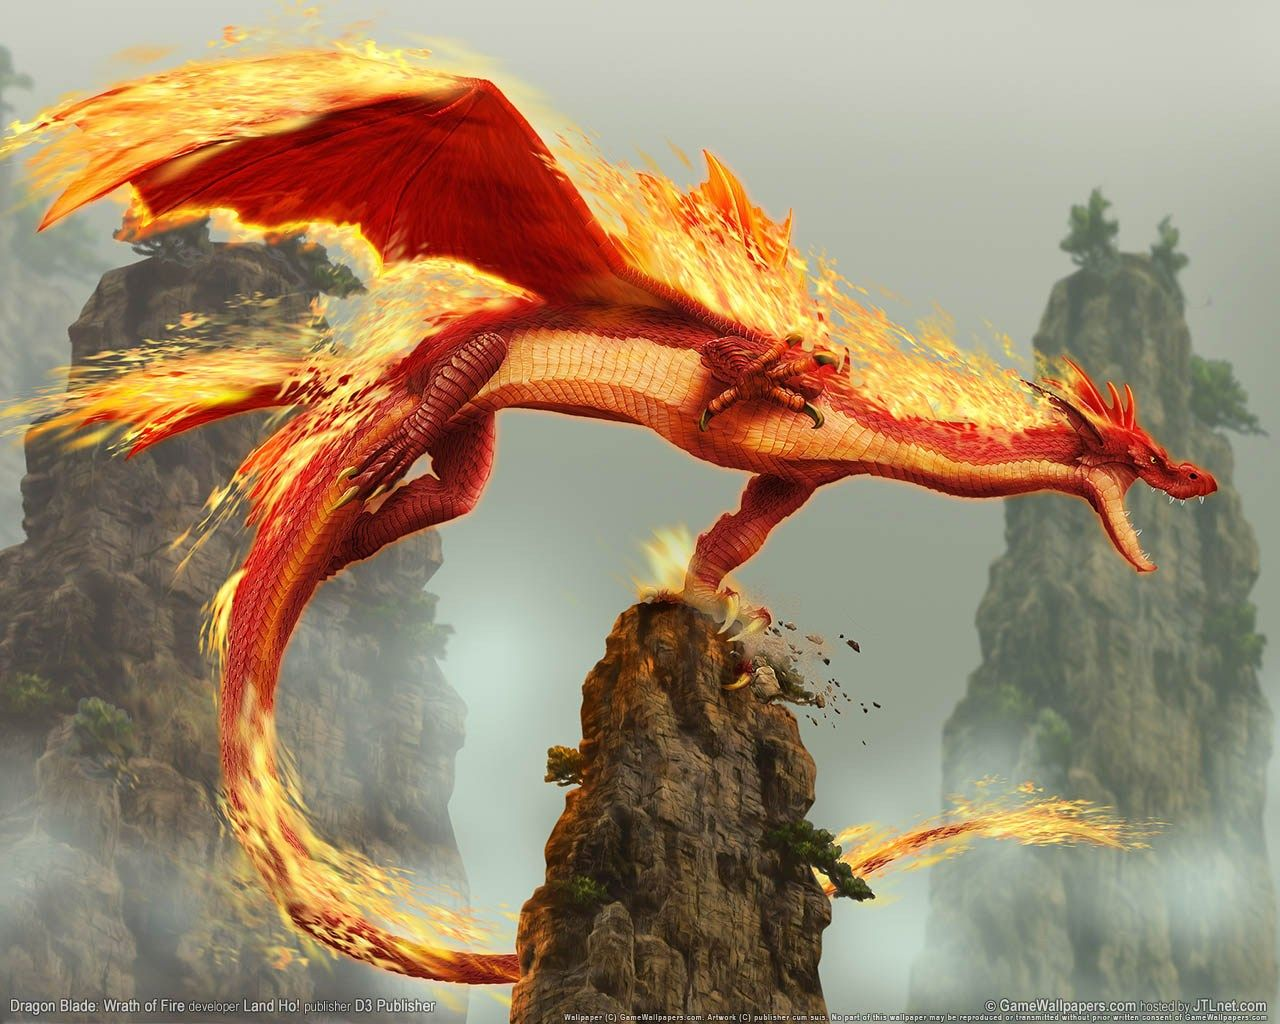 Papel De Parede Dragao De Fogo Wallpaper Para Download No Celular